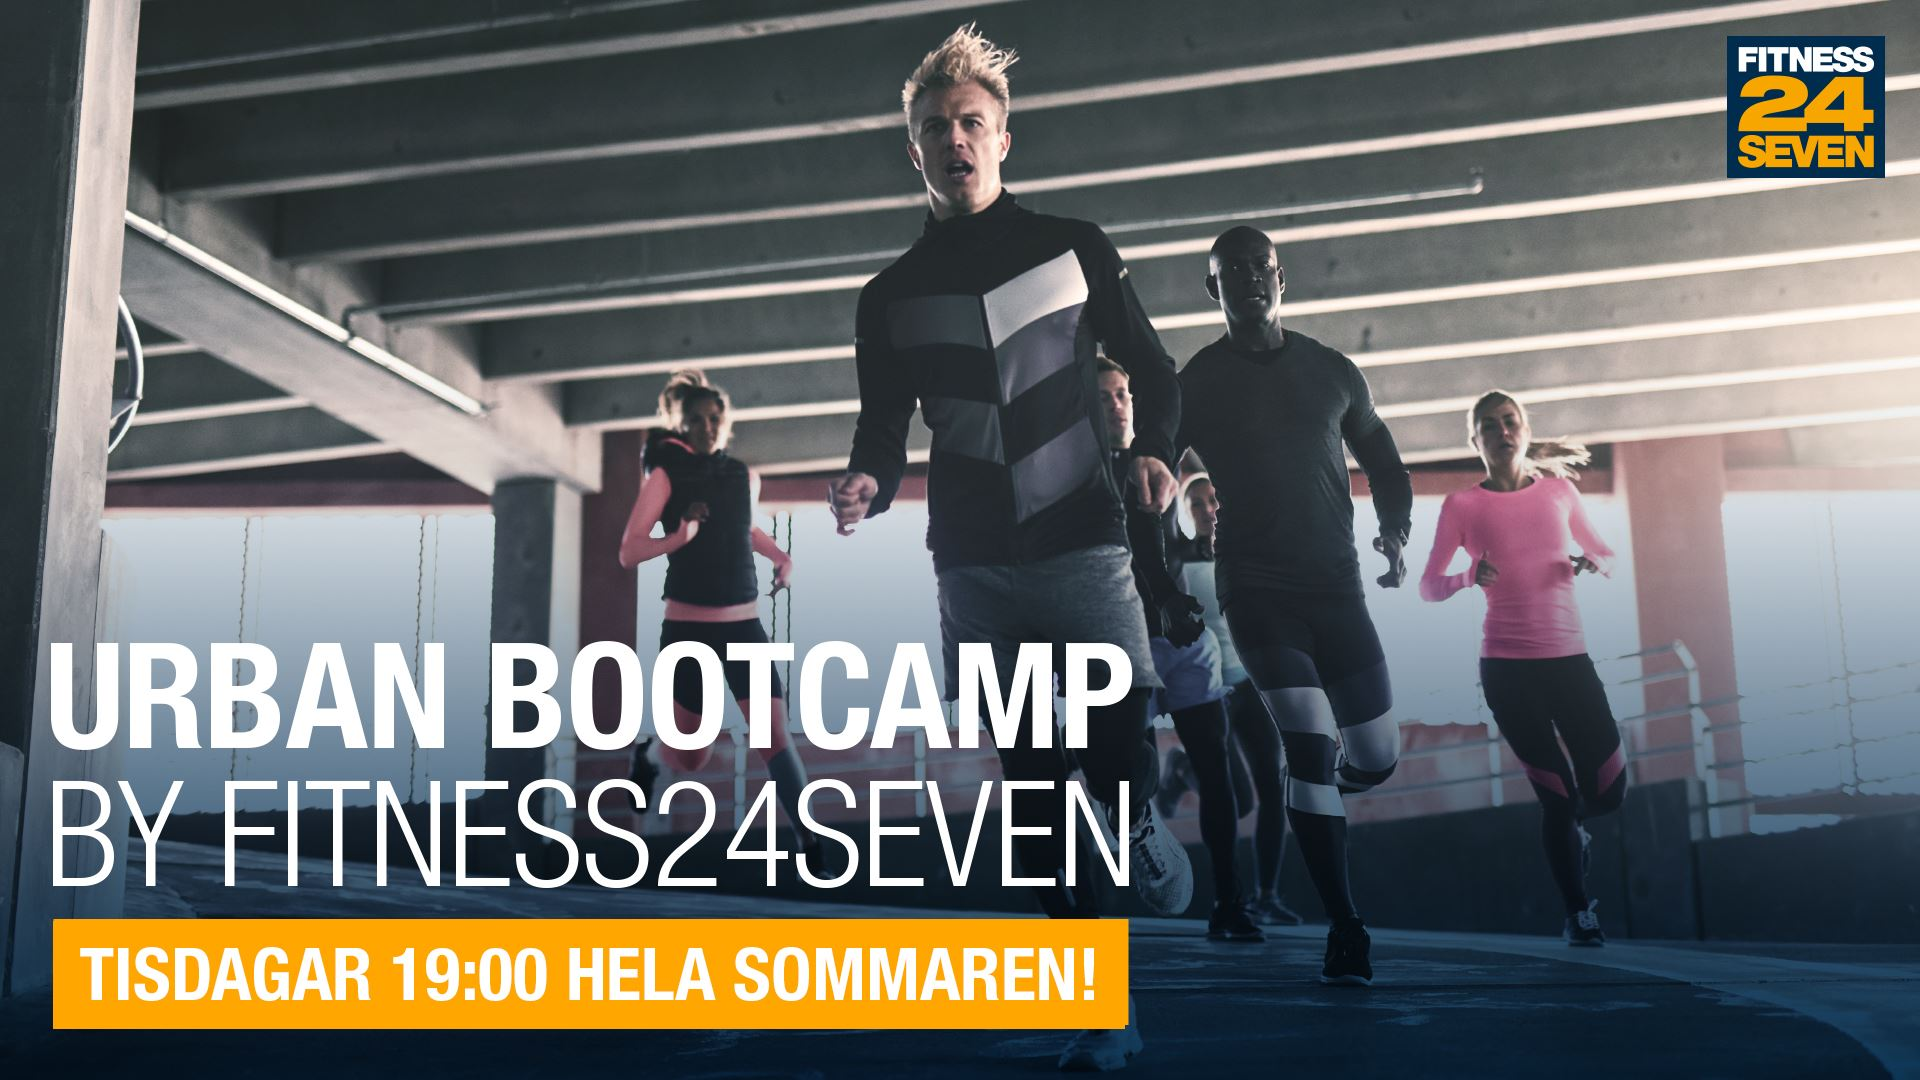 Urban Bootcamp by Fitness24Seven